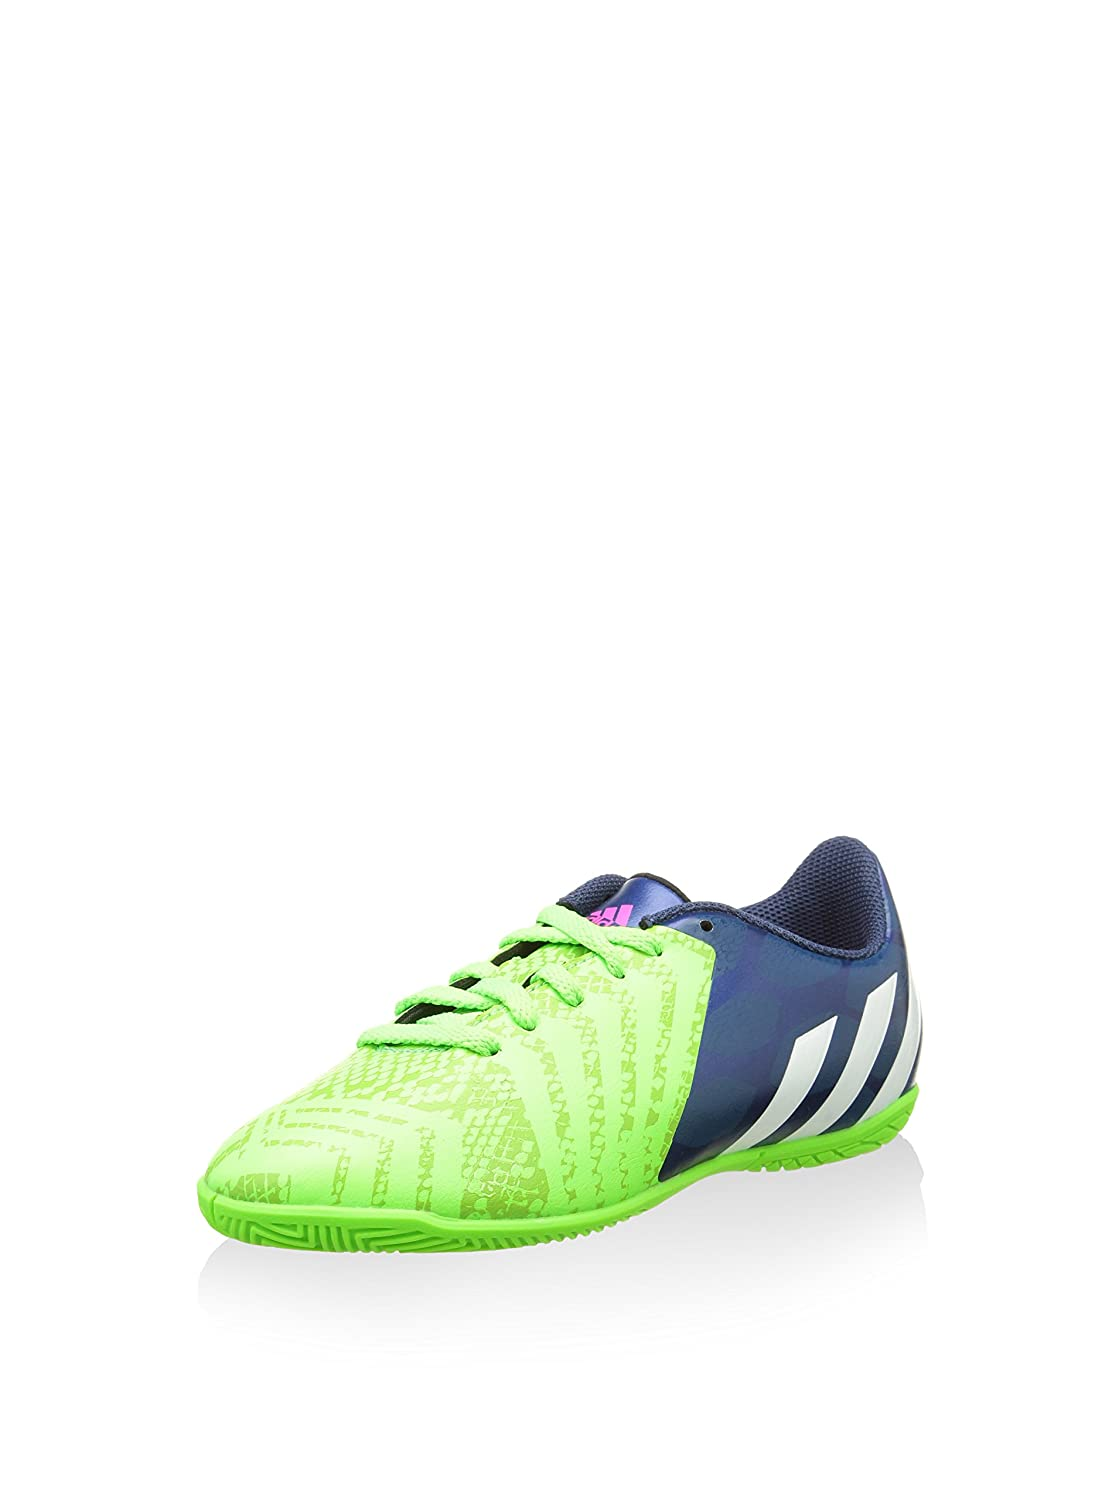 344d3c032 Adidas PREDITO INSTINCT IN J Green Kids Junior Indoor Football Soccer Shoes   Amazon.co.uk  Sports   Outdoors